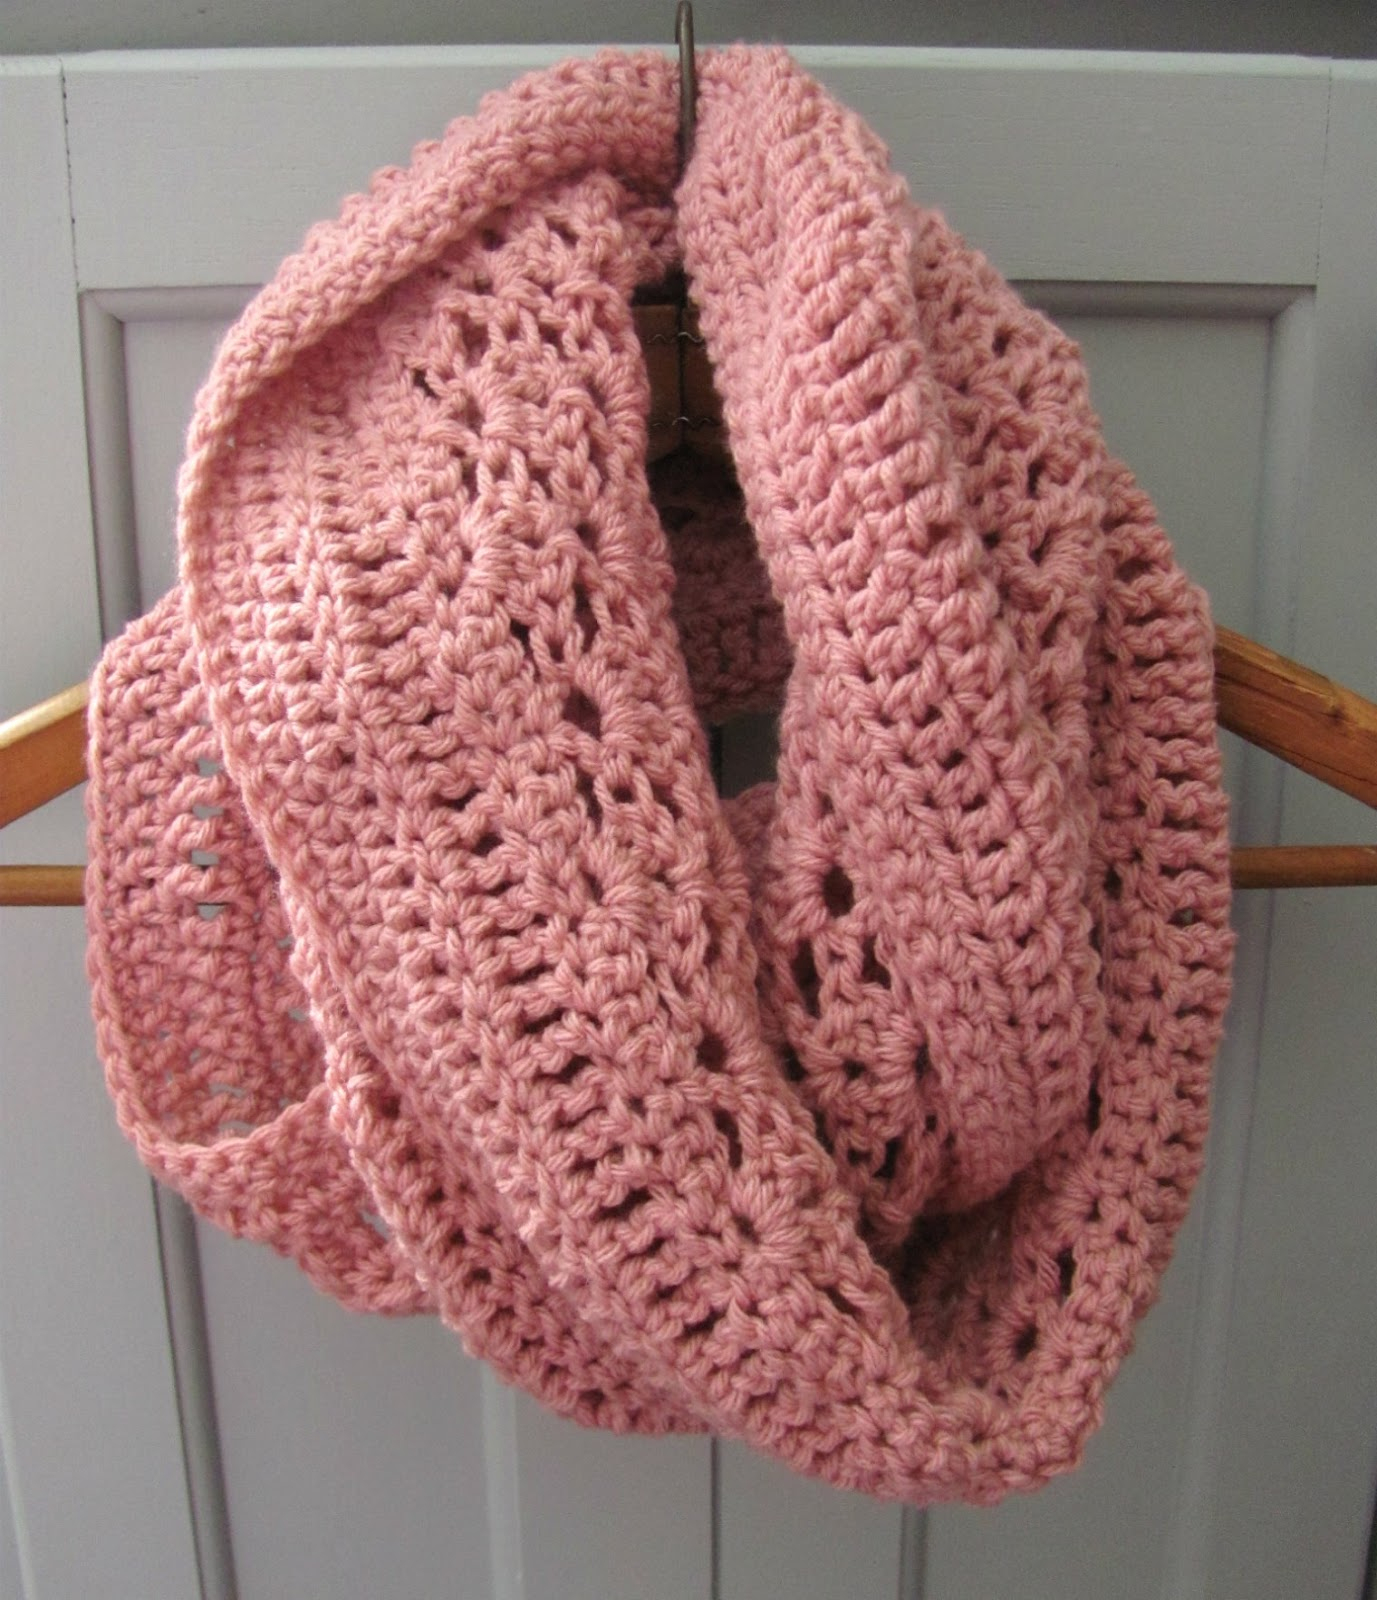 30+ Fabulous And Free Crochet Scarf Patterns - - Free Printable Crochet Scarf Patterns